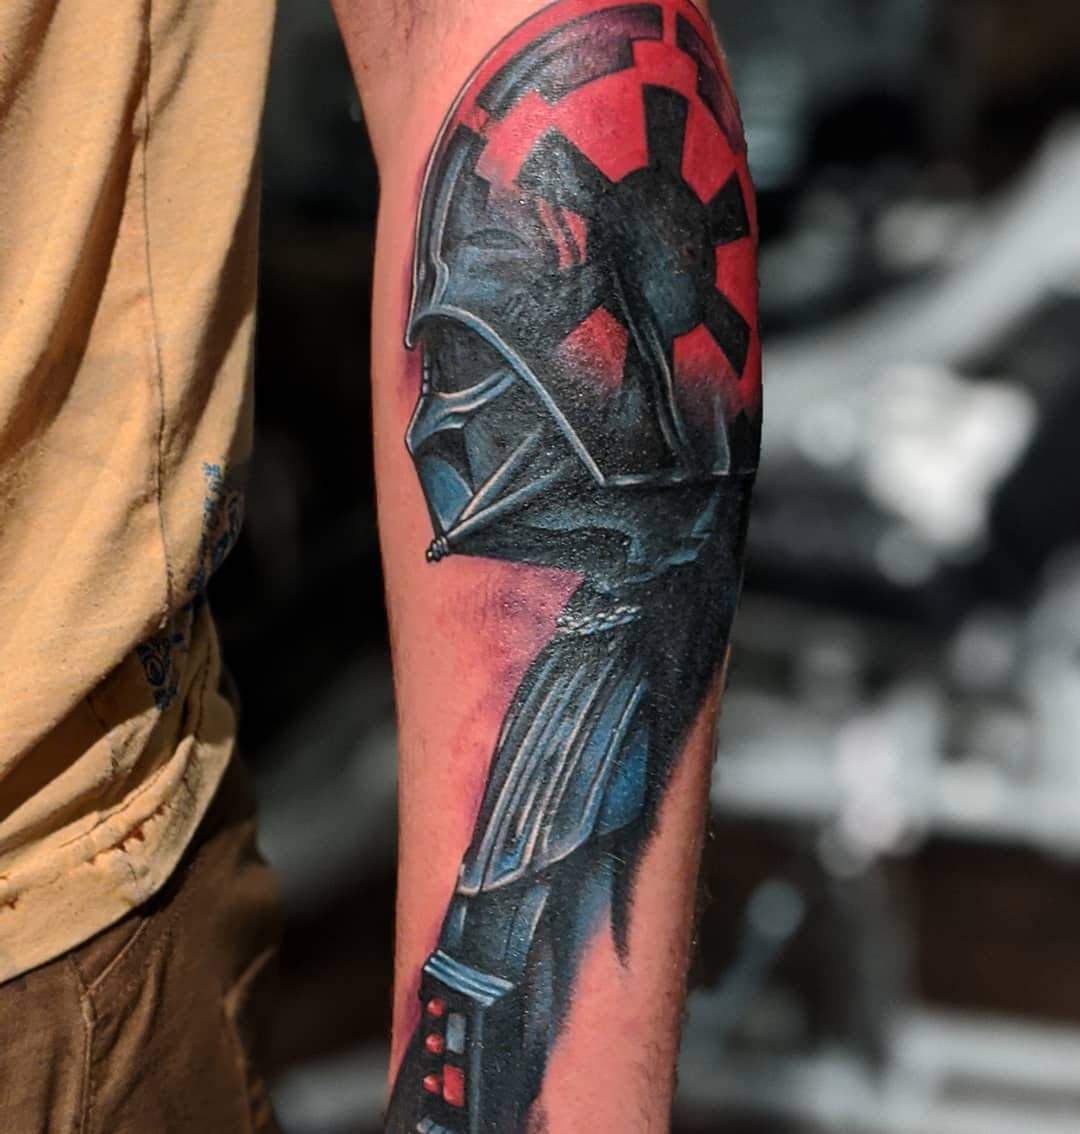 Darth Vader & the Galactic Empire arm tattoo